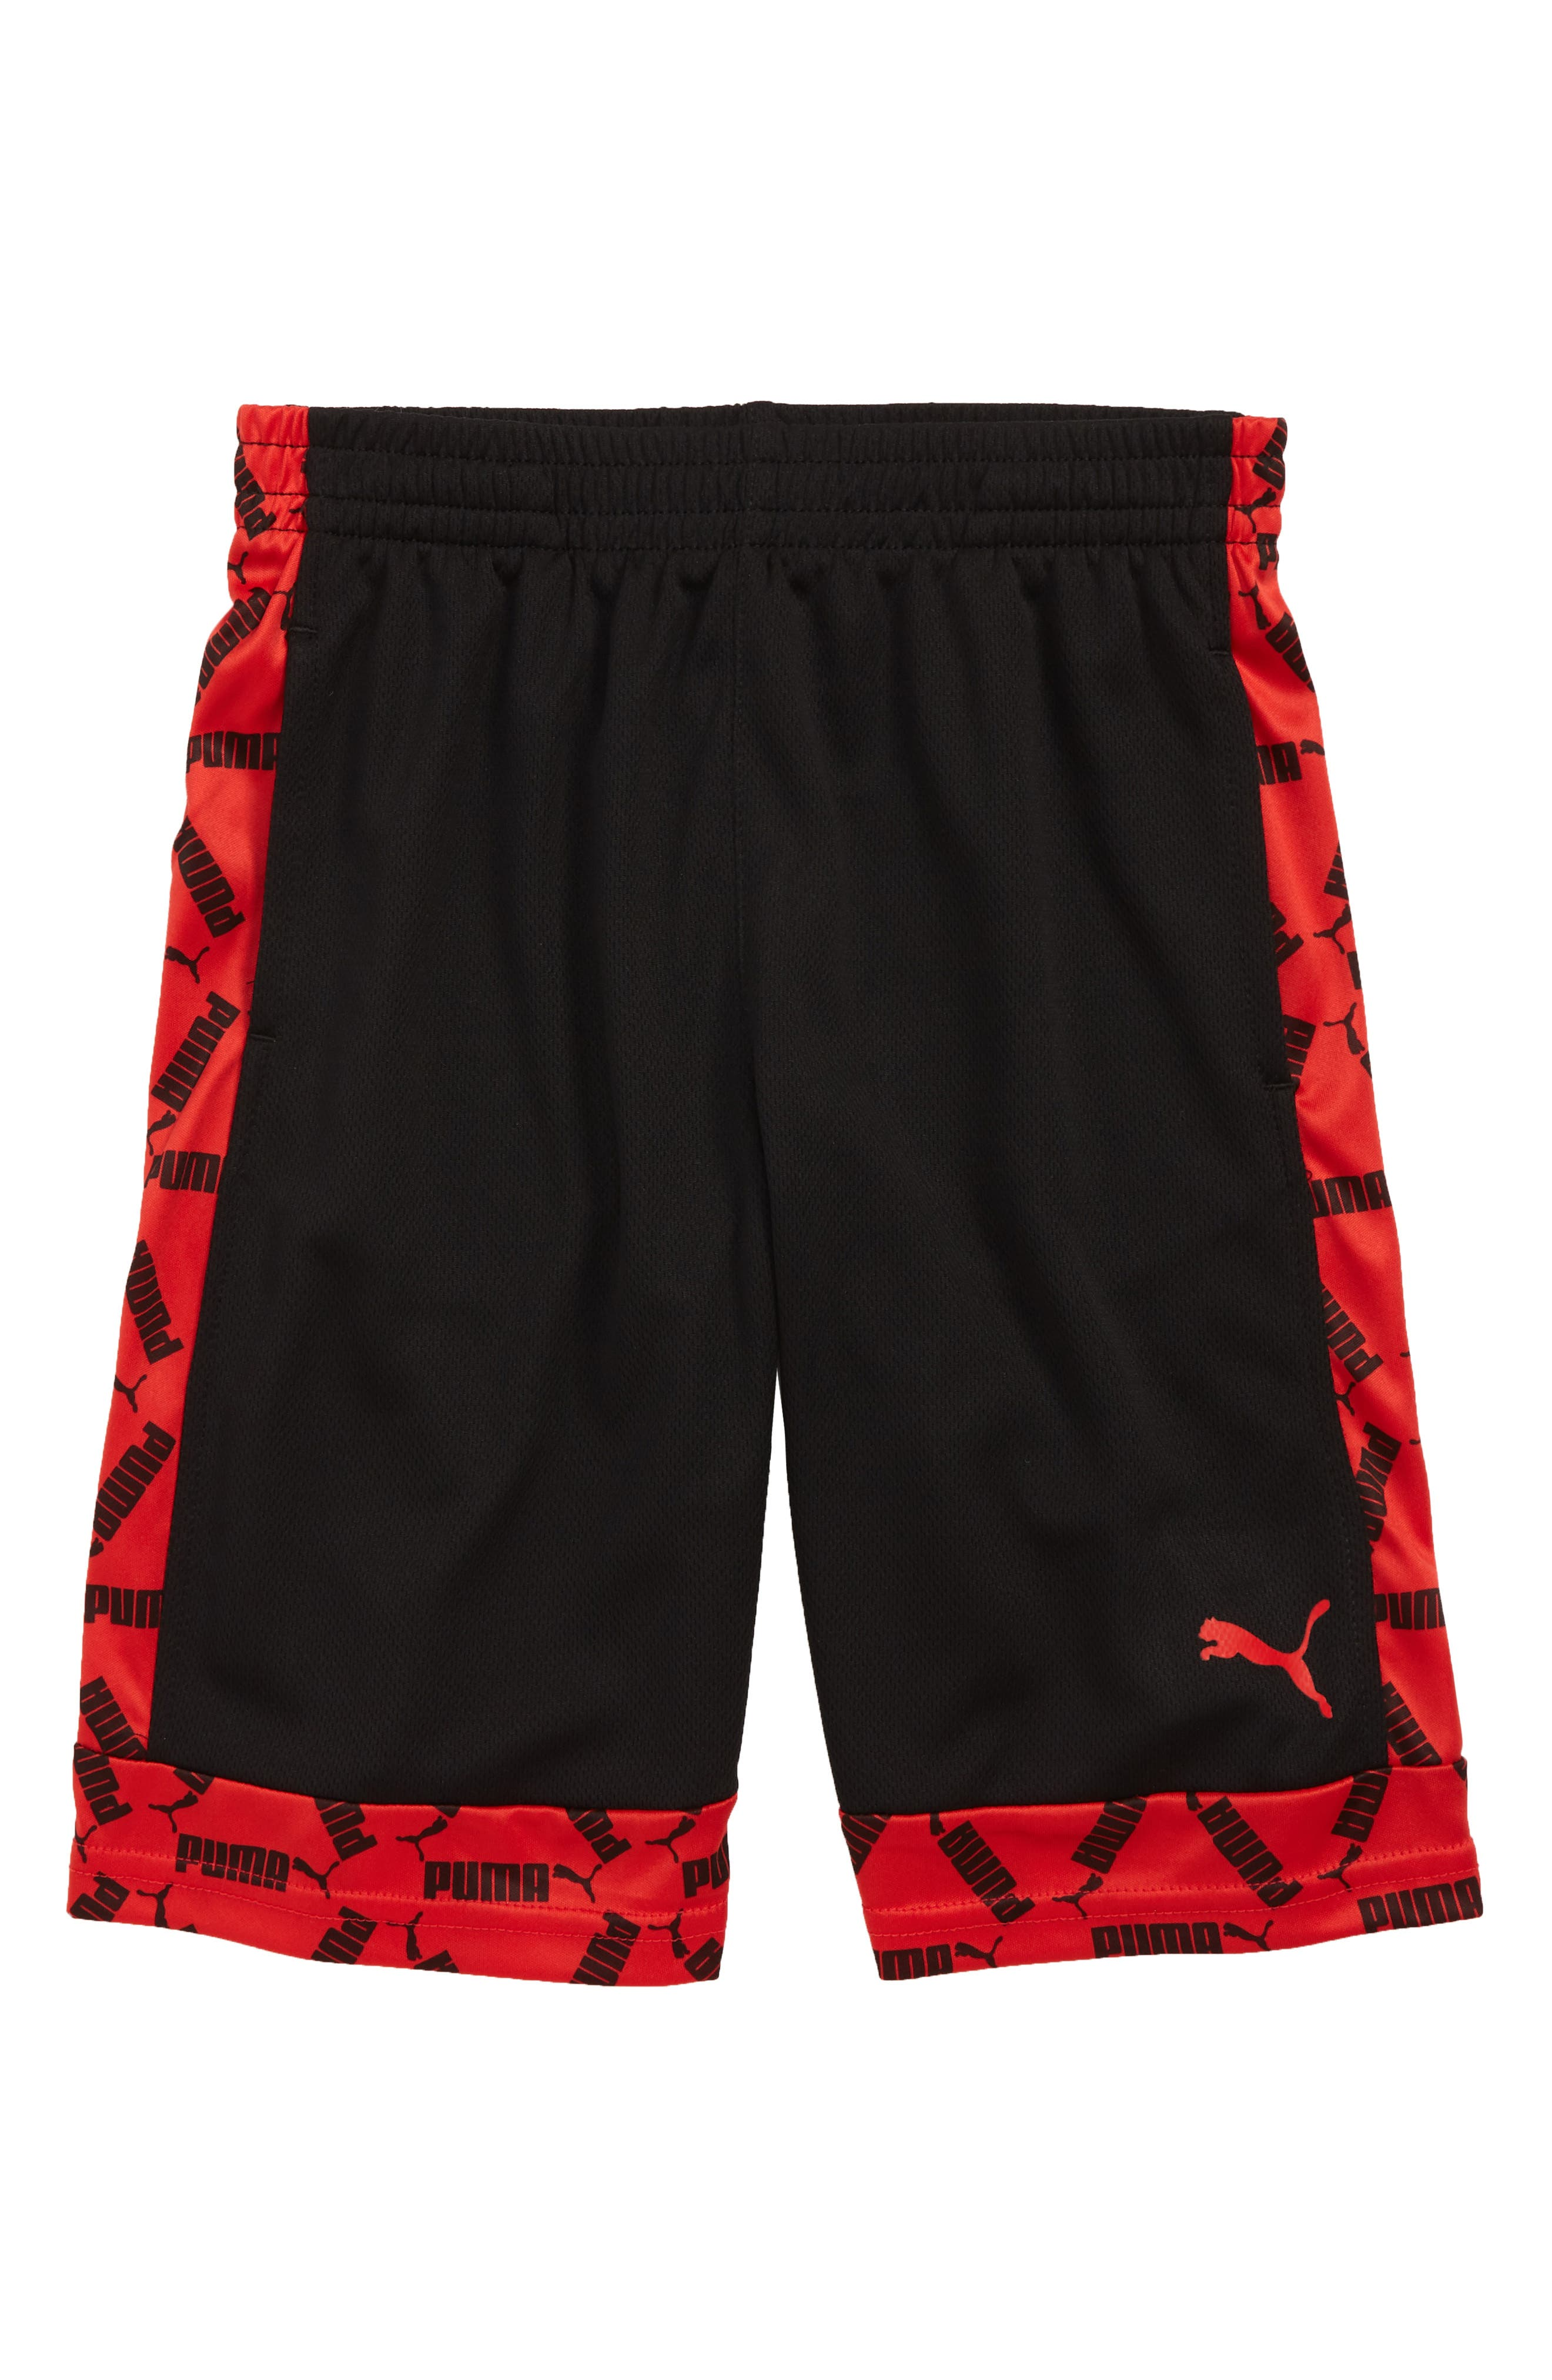 Boys Puma Interlock Performance Shorts